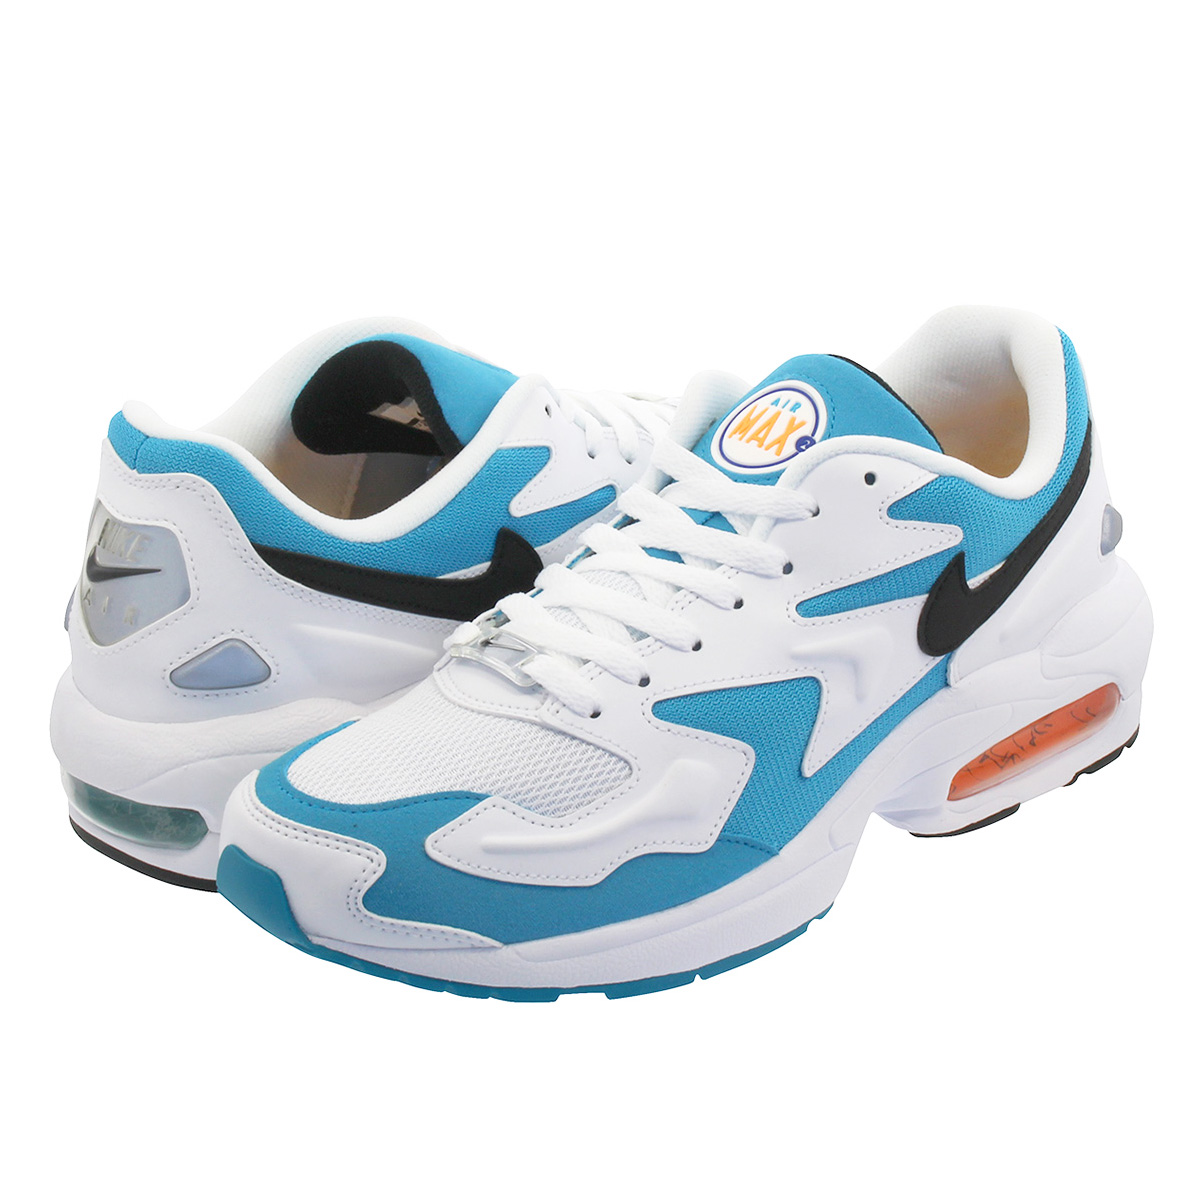 NIKE AIR MAX 2 LIGHT Kie Ney AMAX square light WHITEBLACKBLUE LAGOONLASER ORANGE ao1741 100